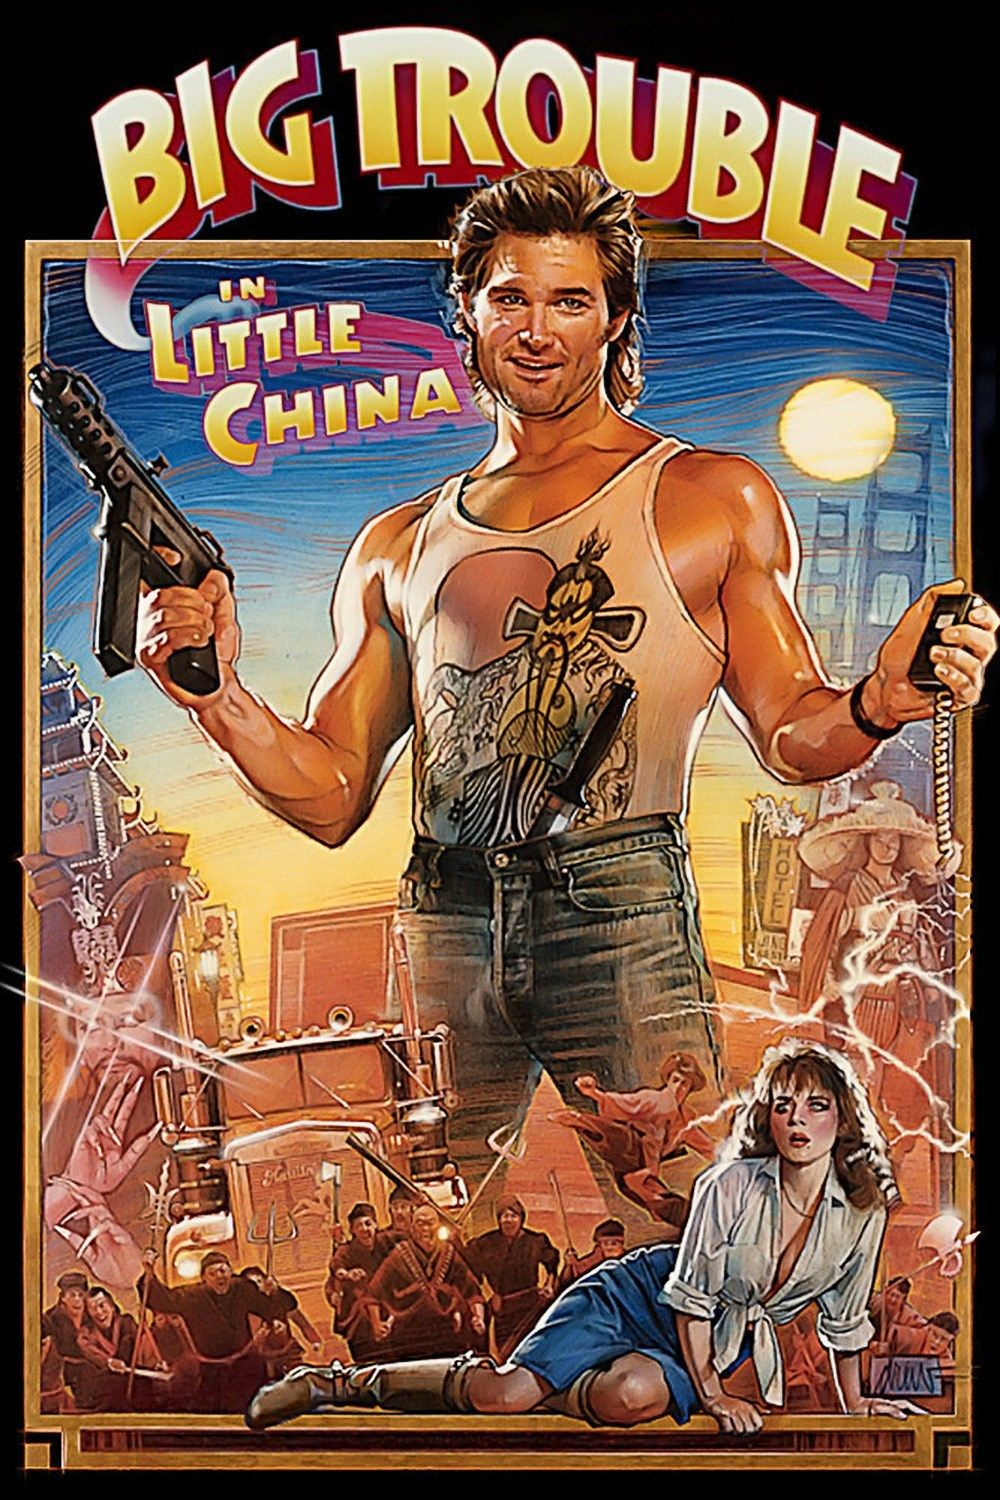 Big Trouble in Little China (With images) Best movie